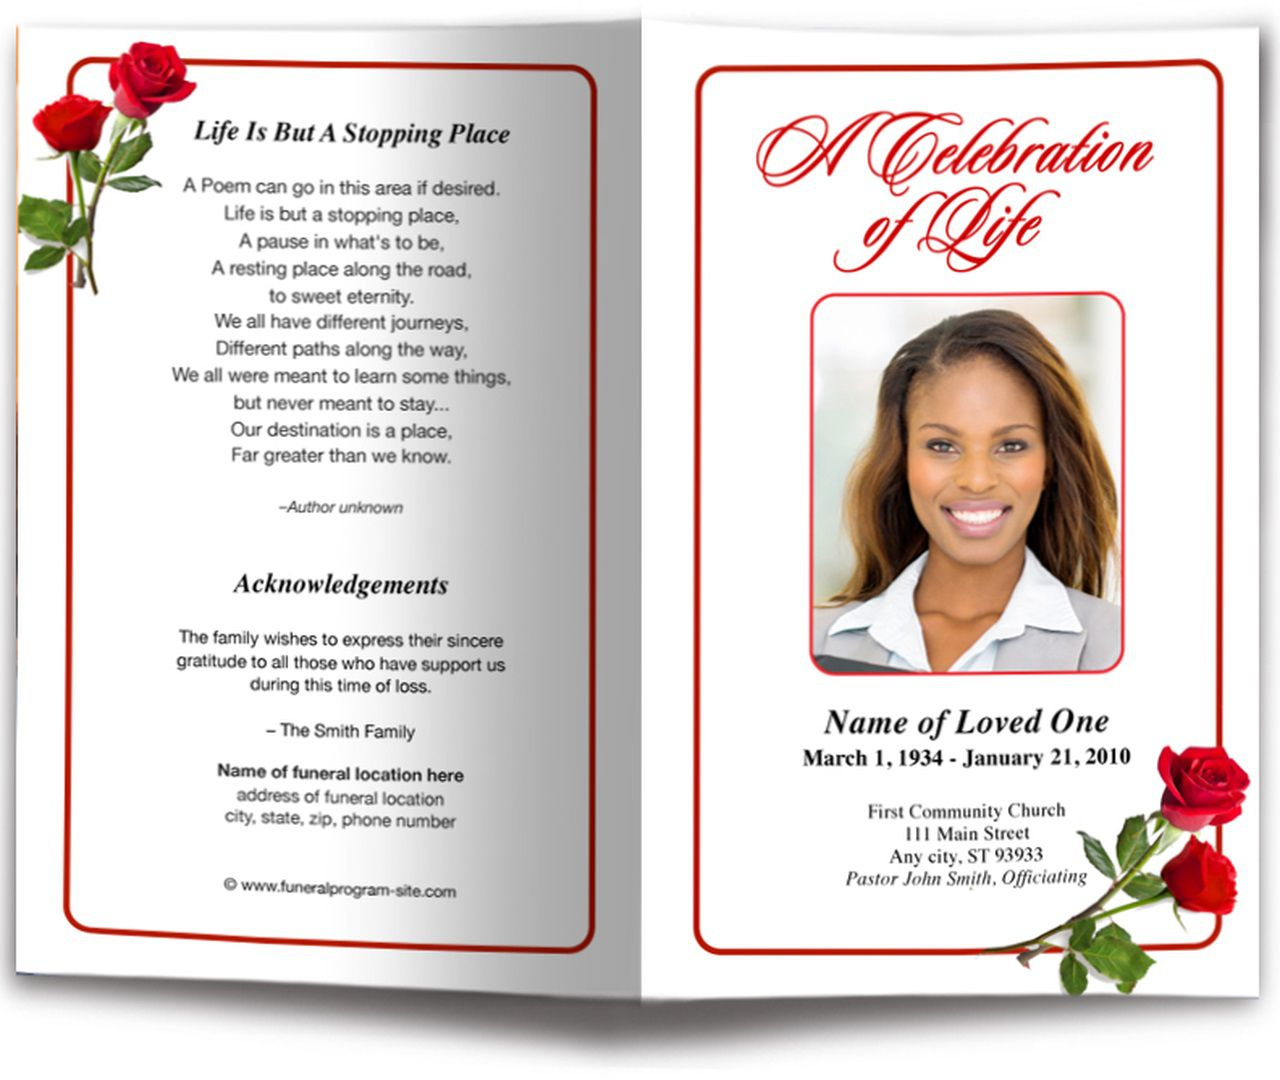 006 Incredible Funeral Program Template Free Inspiration  Printable DesignFull